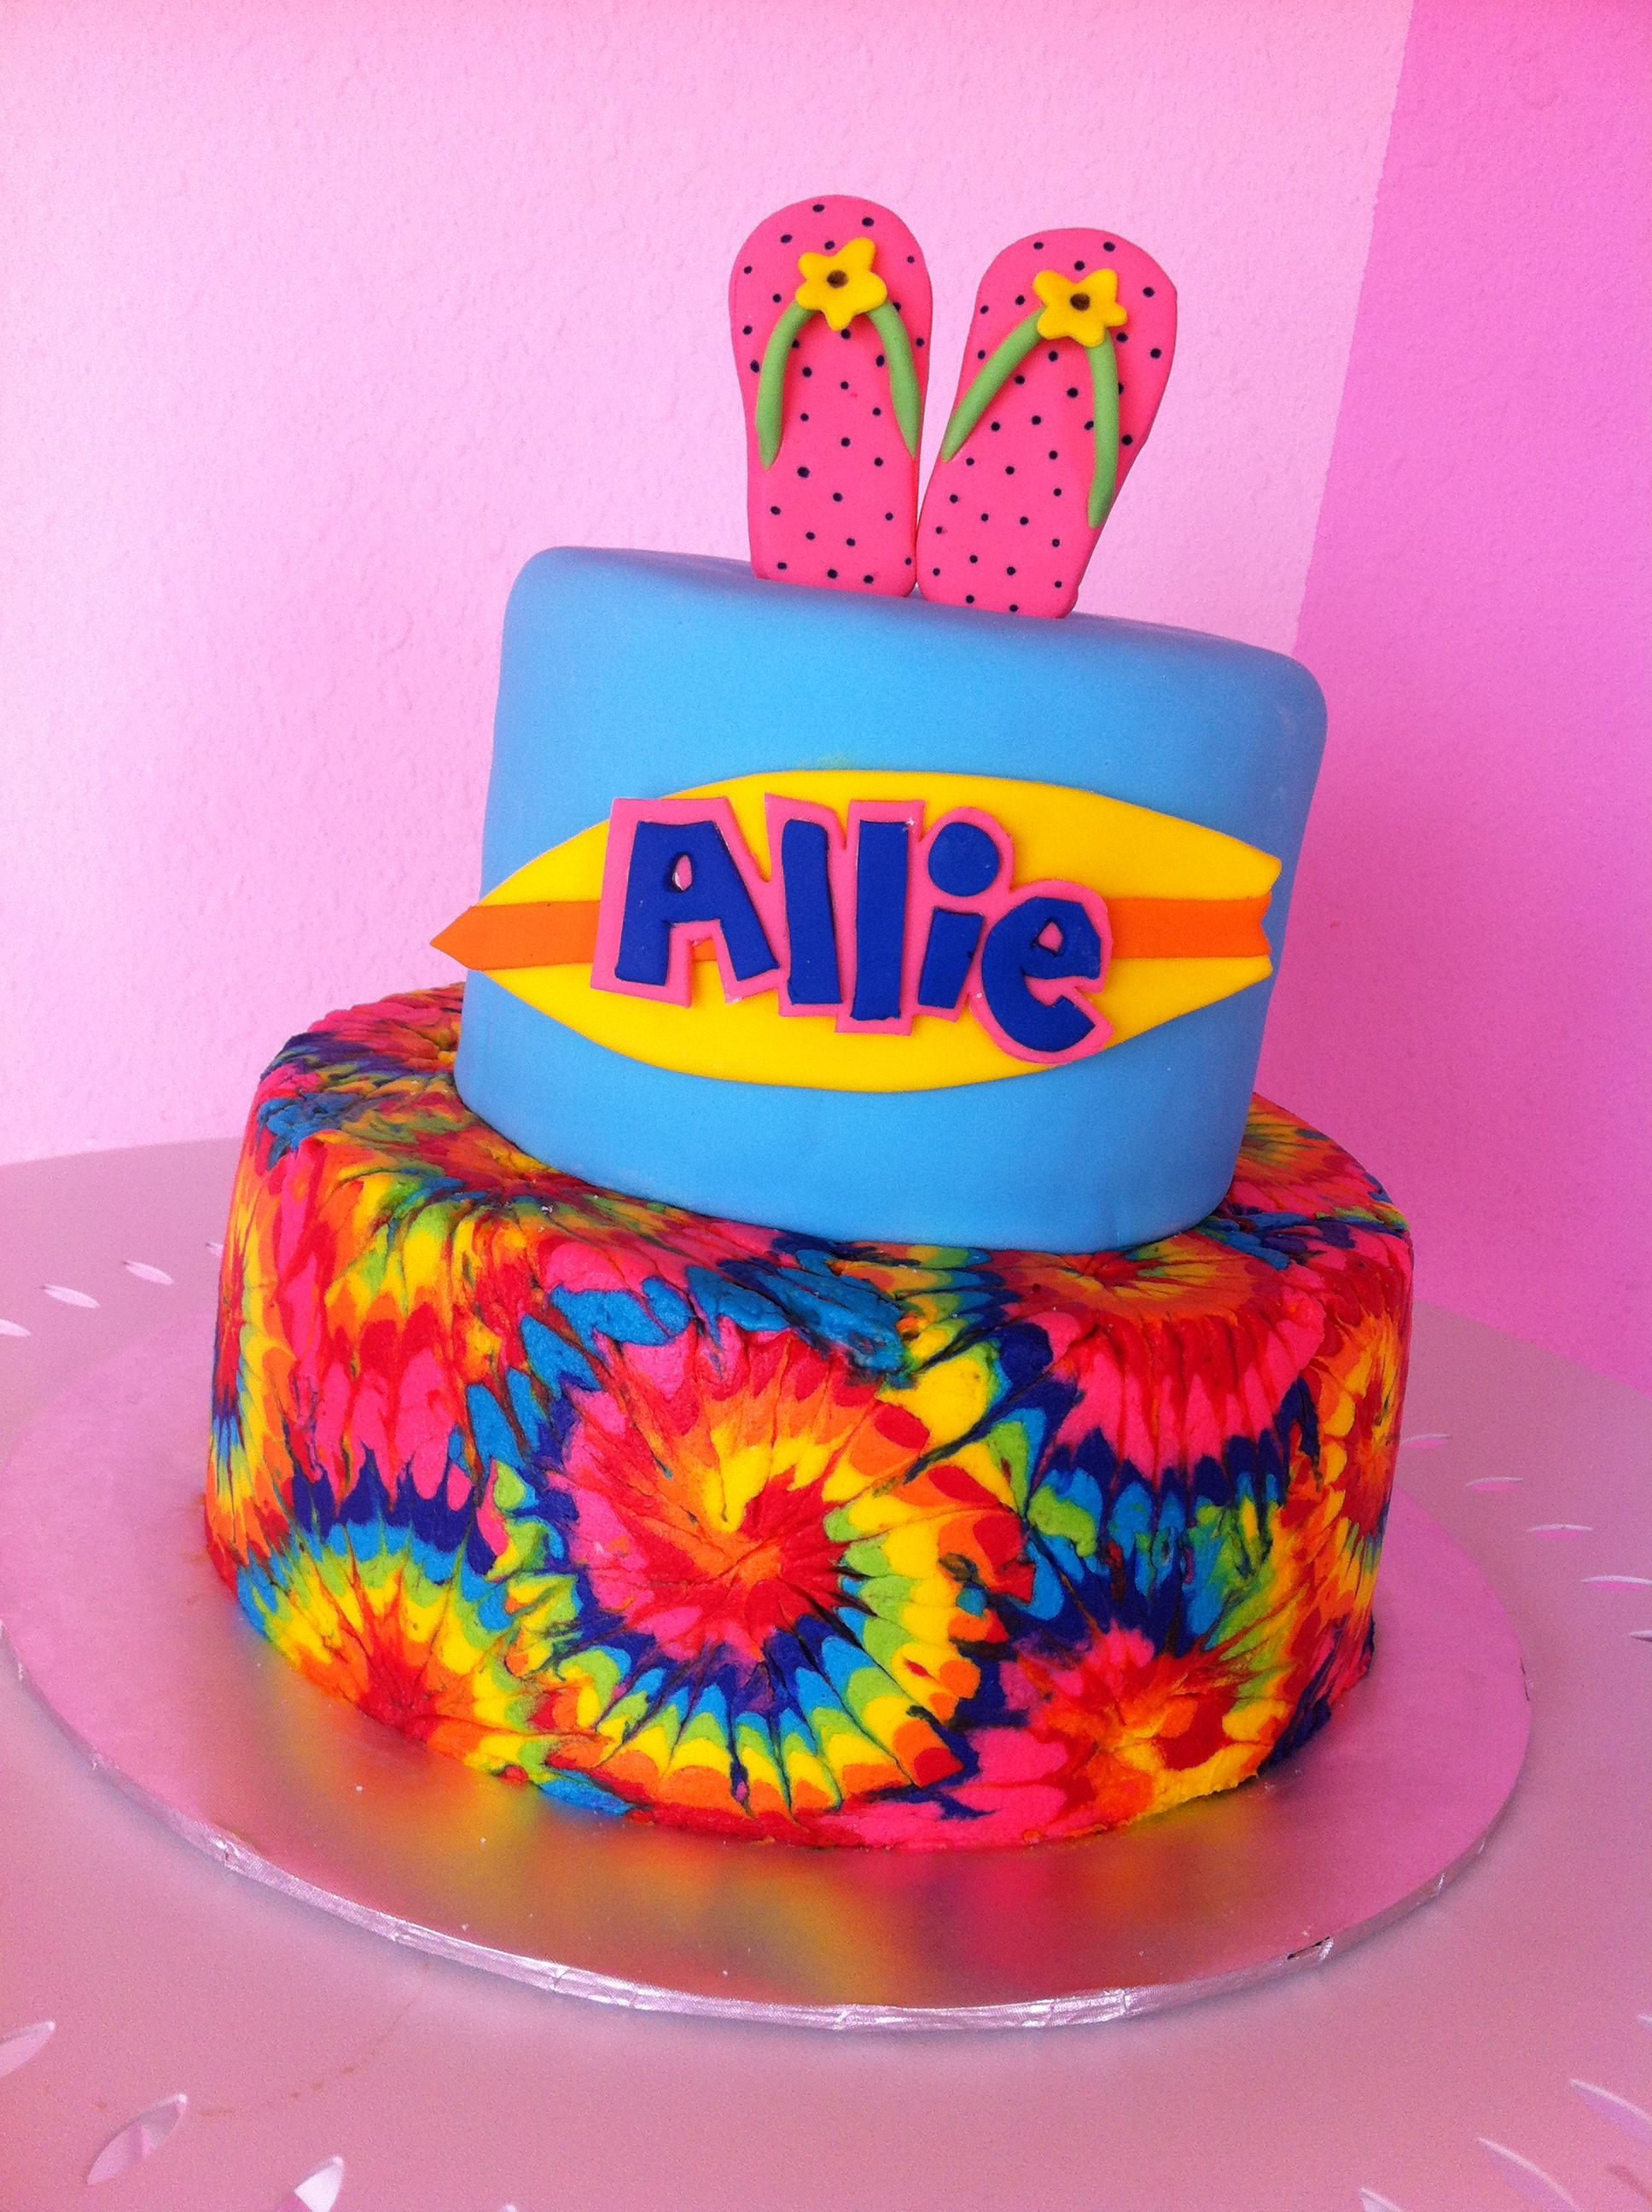 Tie Dye Cake That I Made